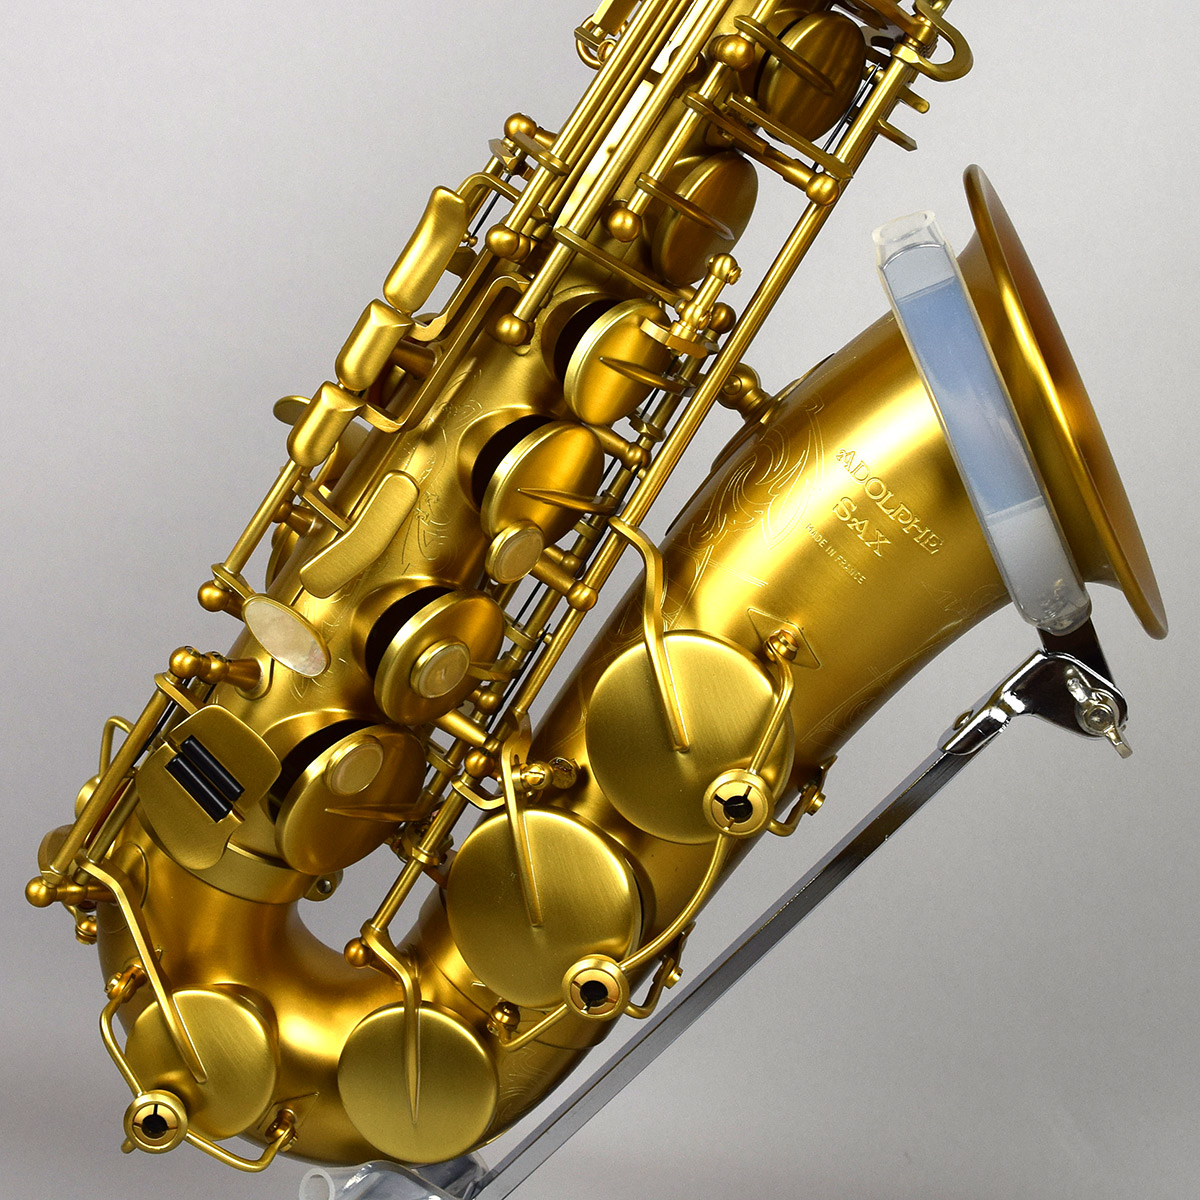 Adolphe Sax Alto Saxophone Limited Brushed Gold Satin W/Case #815275 【アドルフサックス アルト】【世界150本限定/未展示新品】